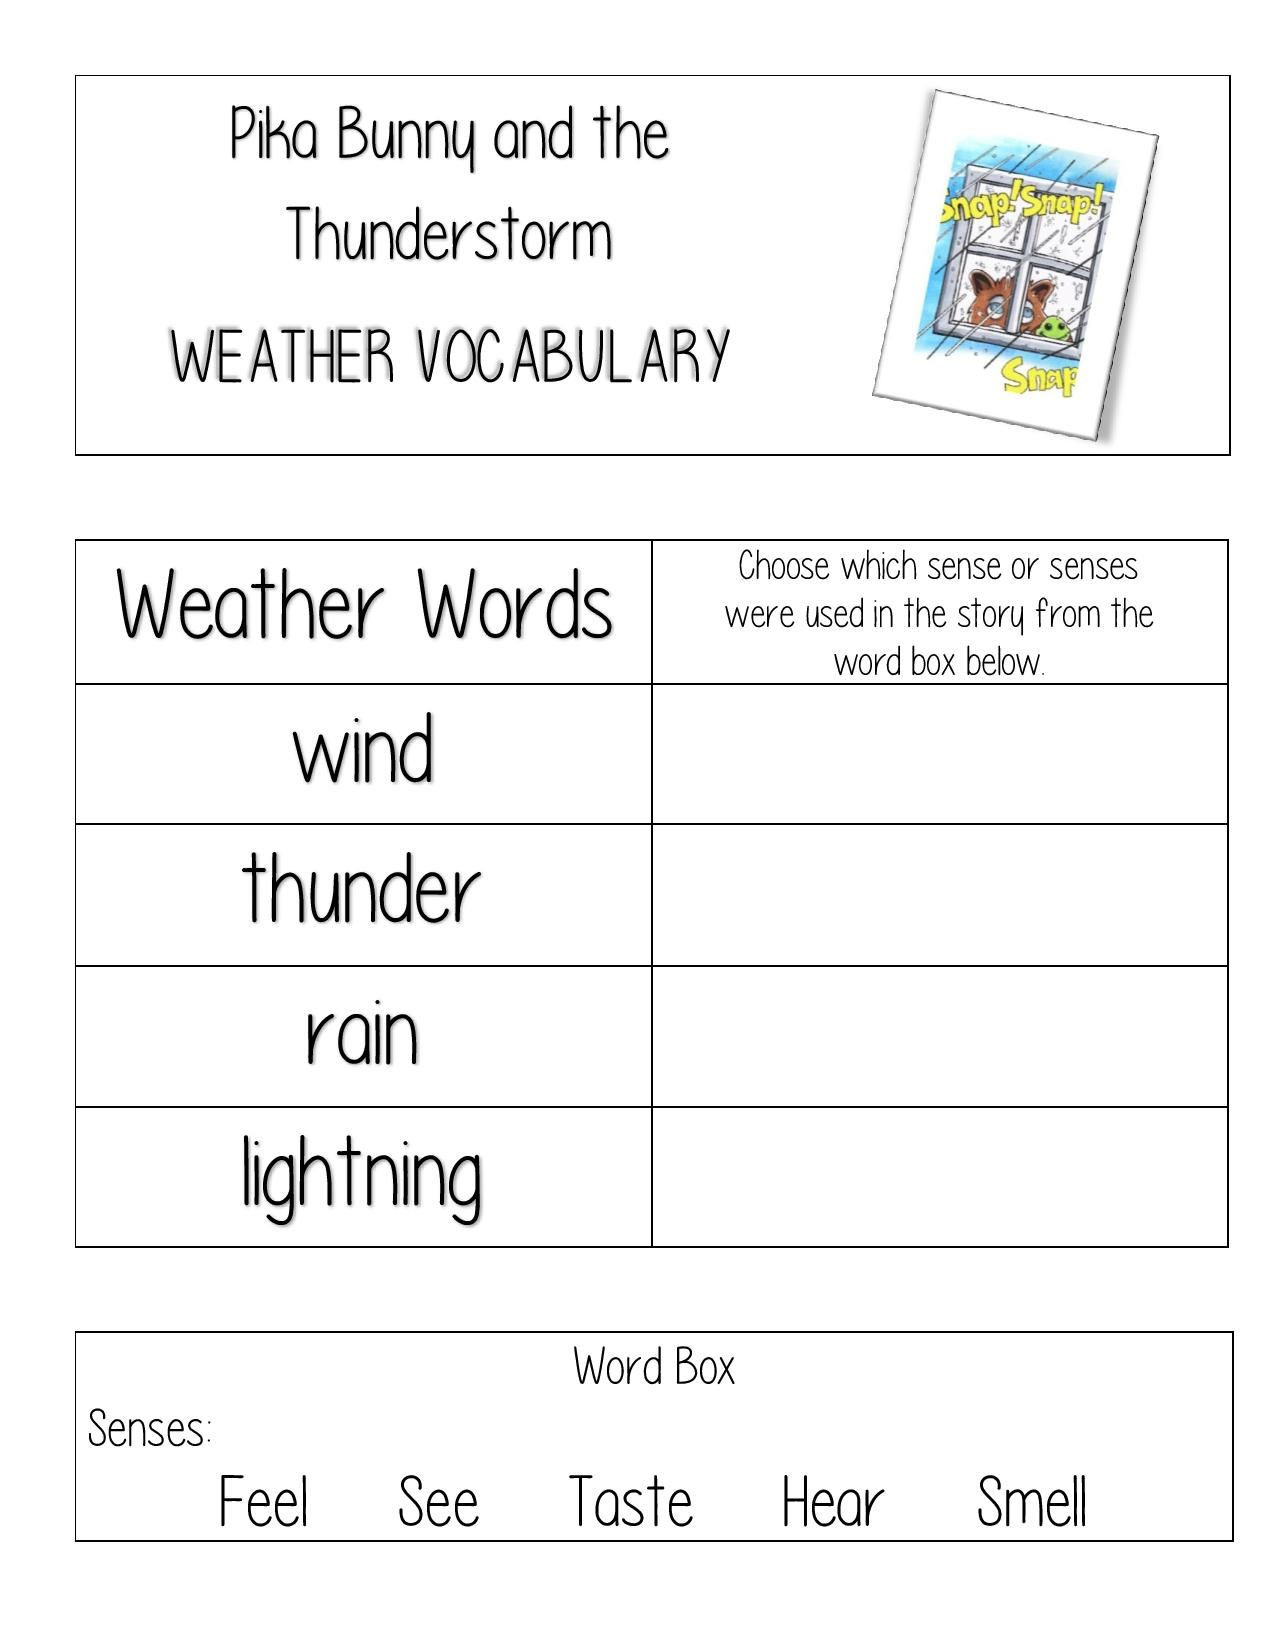 Weather Worksheets for 2nd Grade Free Weather Worksheet for Teachers and Homeschool for